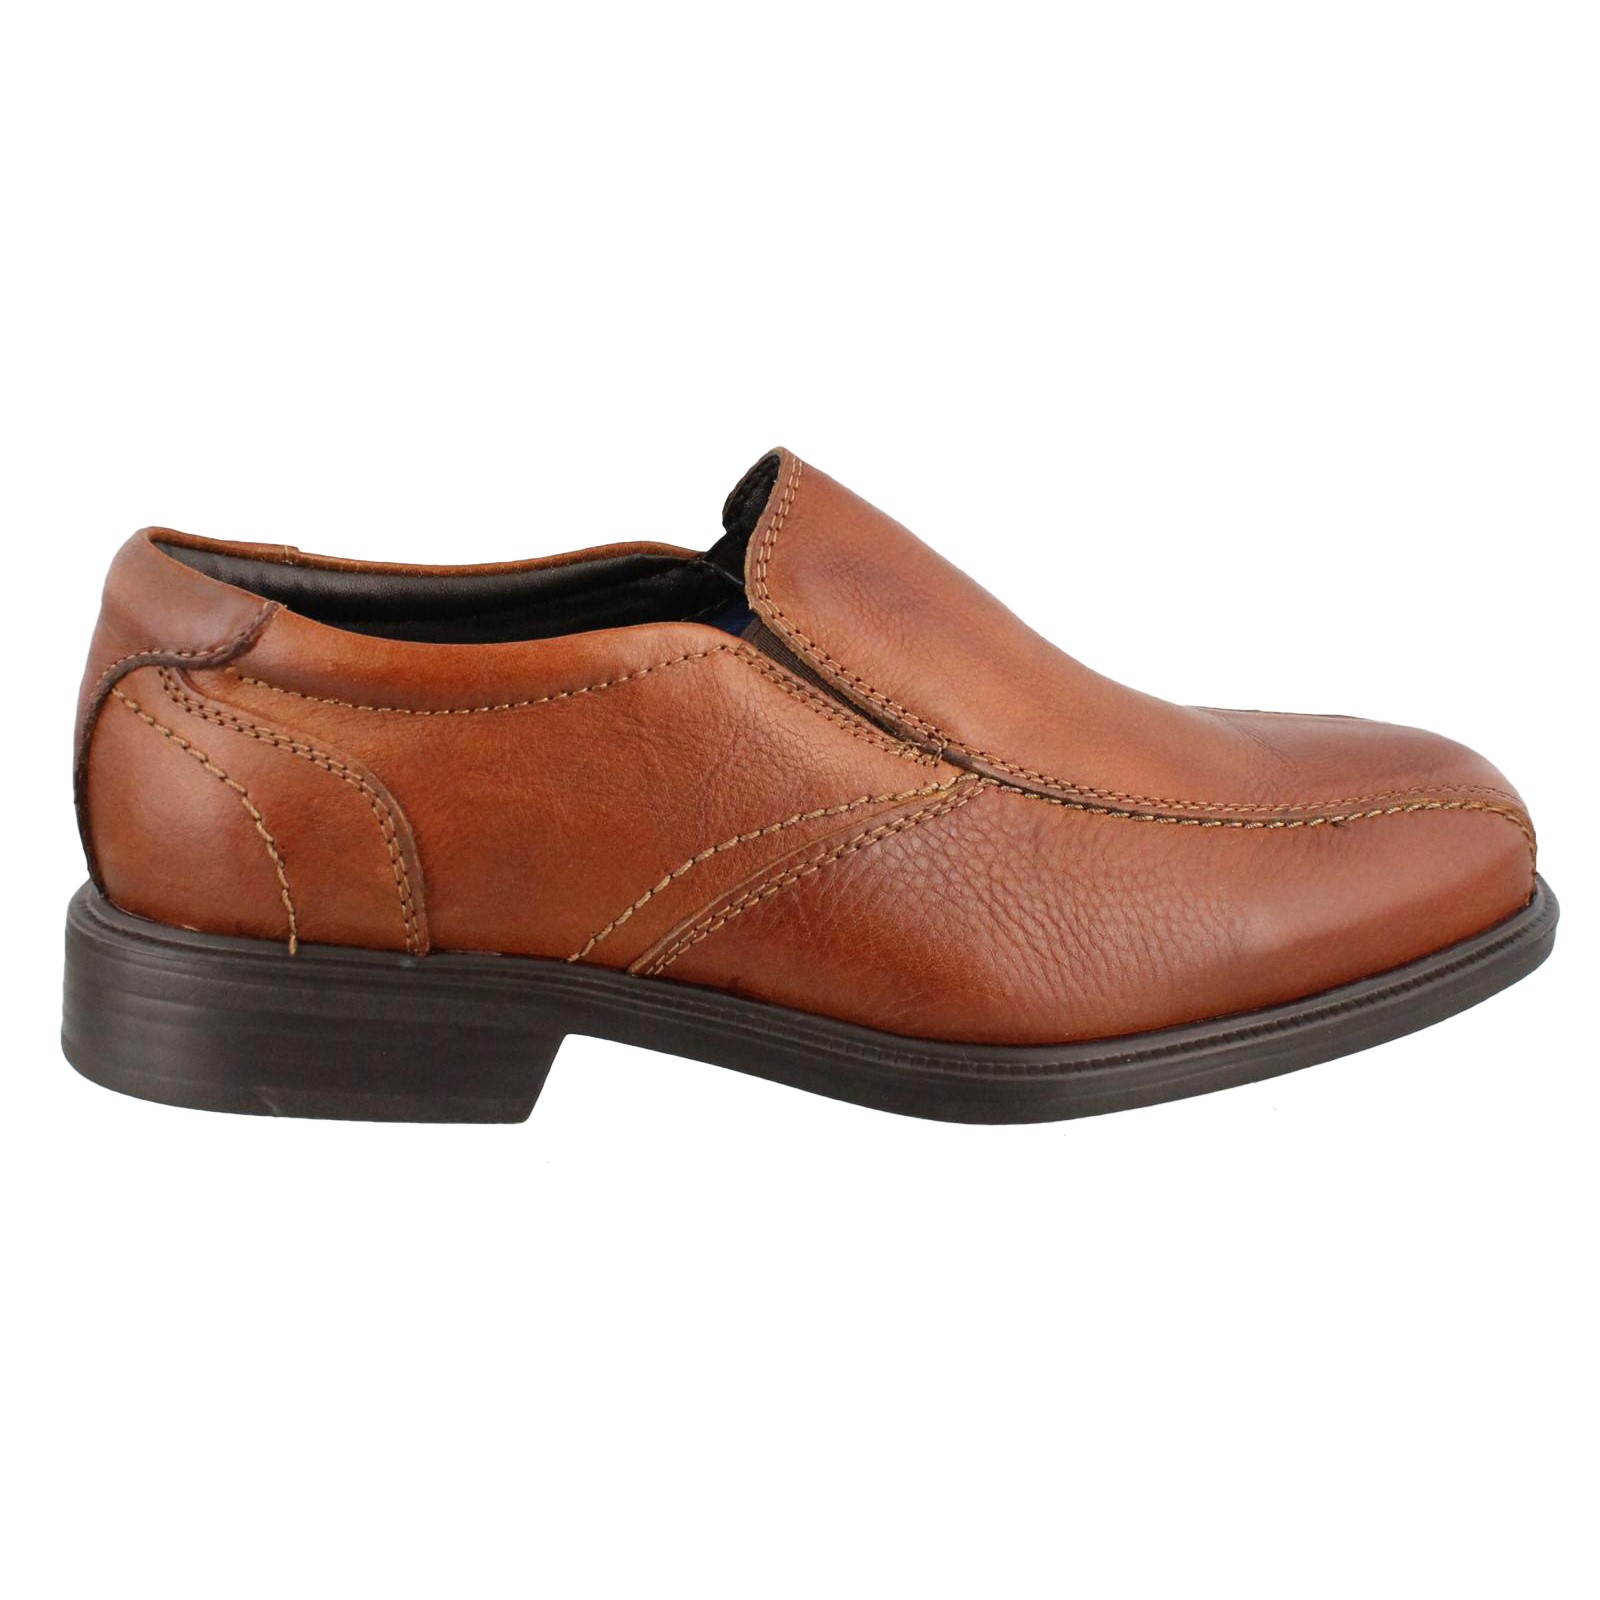 Men's Florsheim, Freedom Slip on dress Shoes